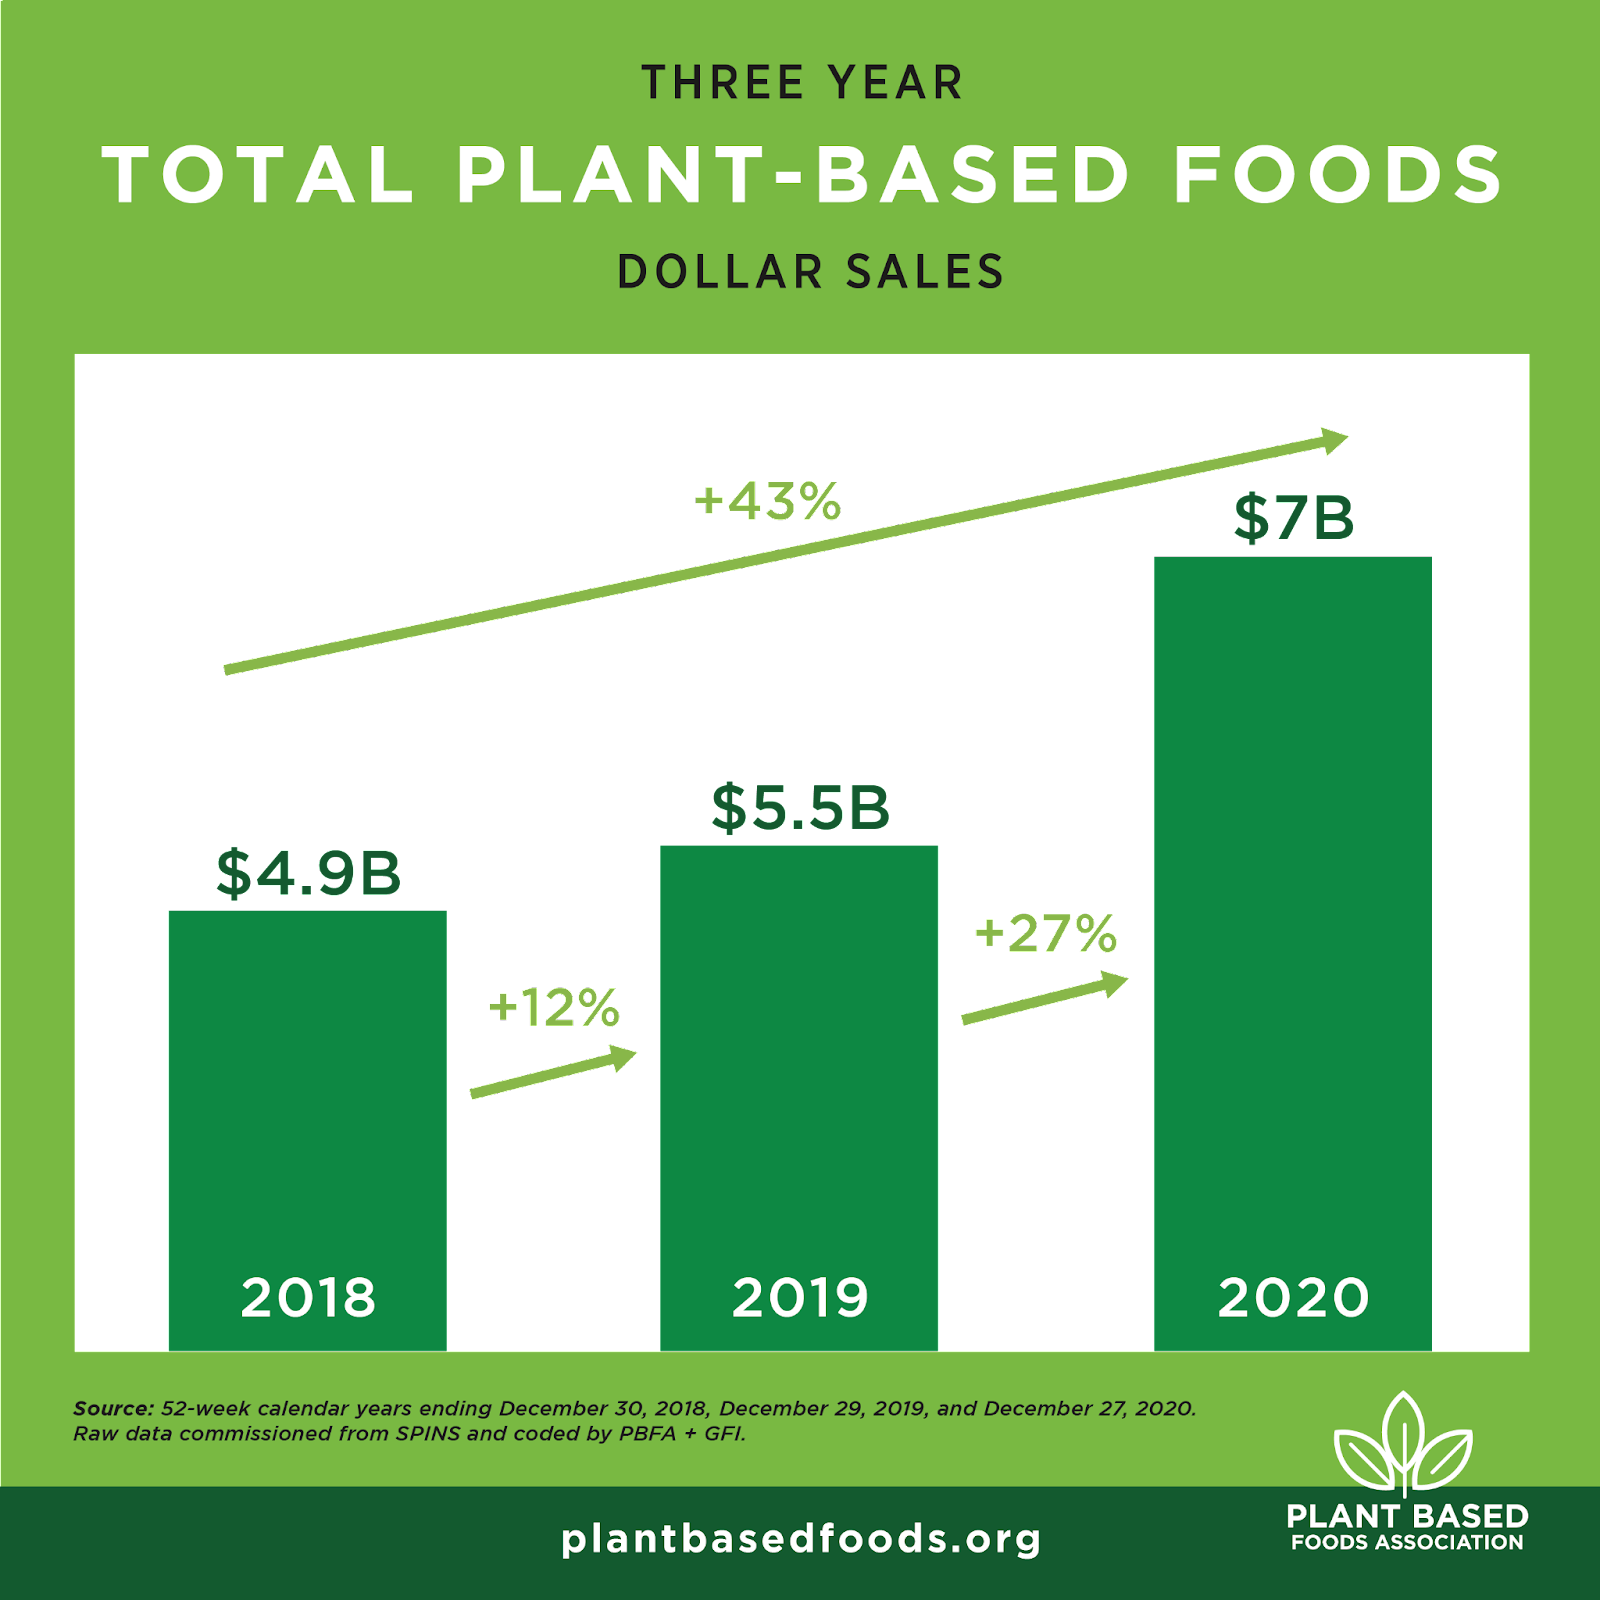 Three year plant-based foods dollar sale projections